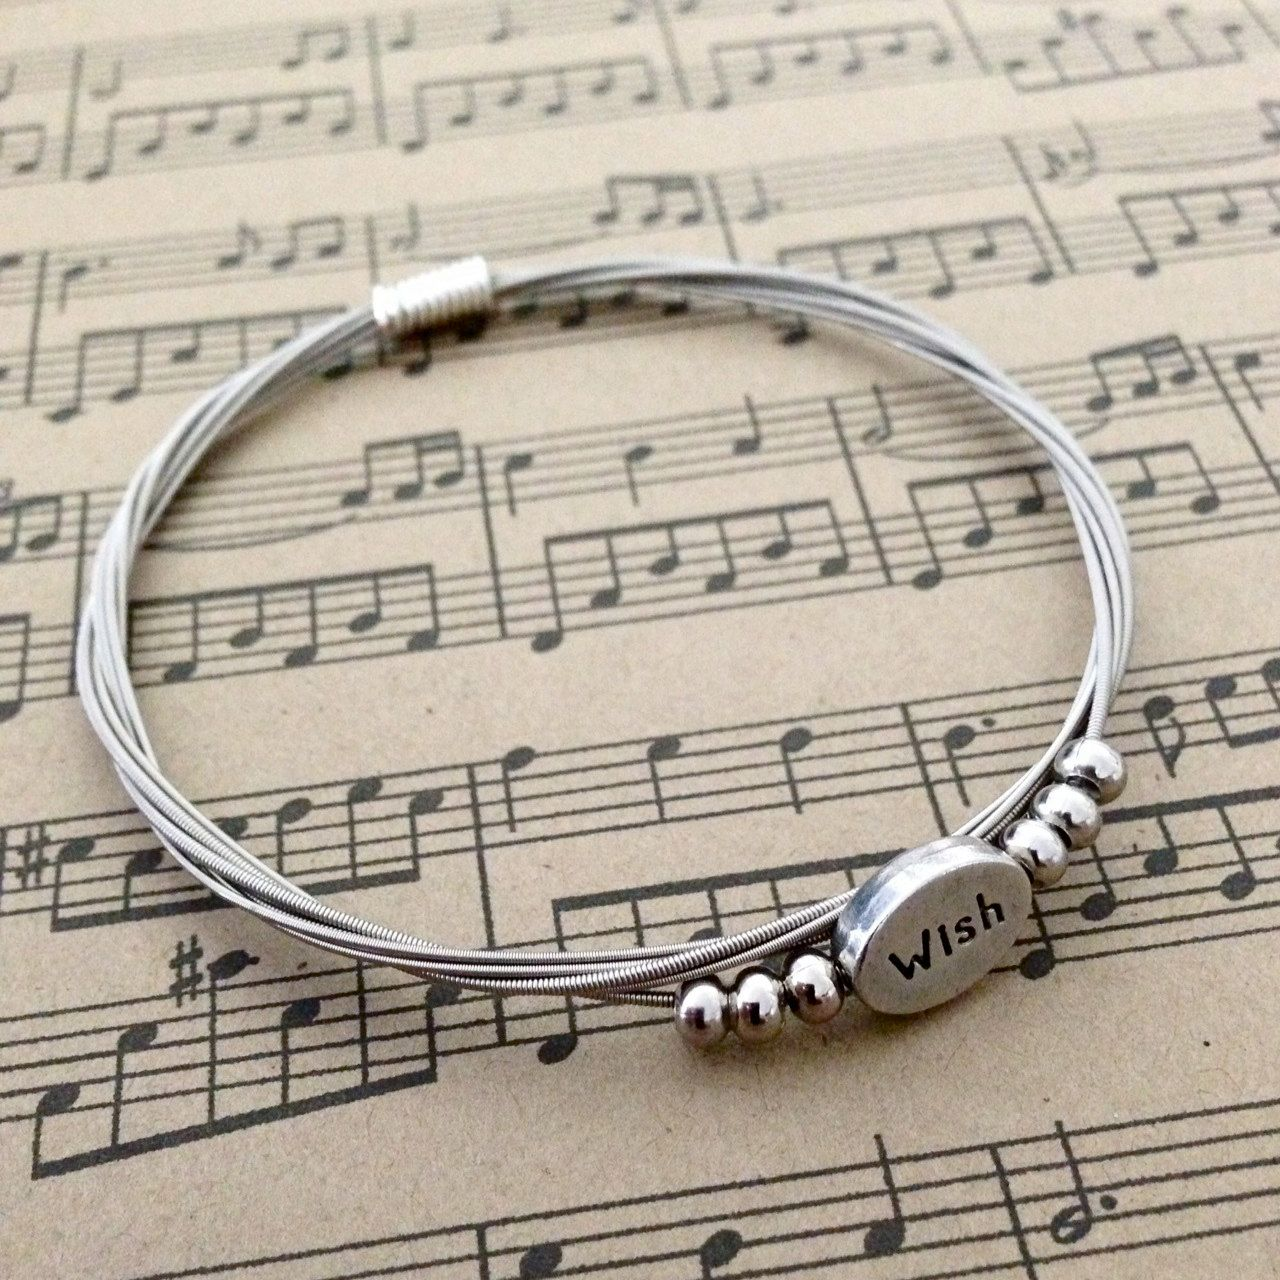 Recycled guitar string jewelry - Recycled Guitar String Bangle